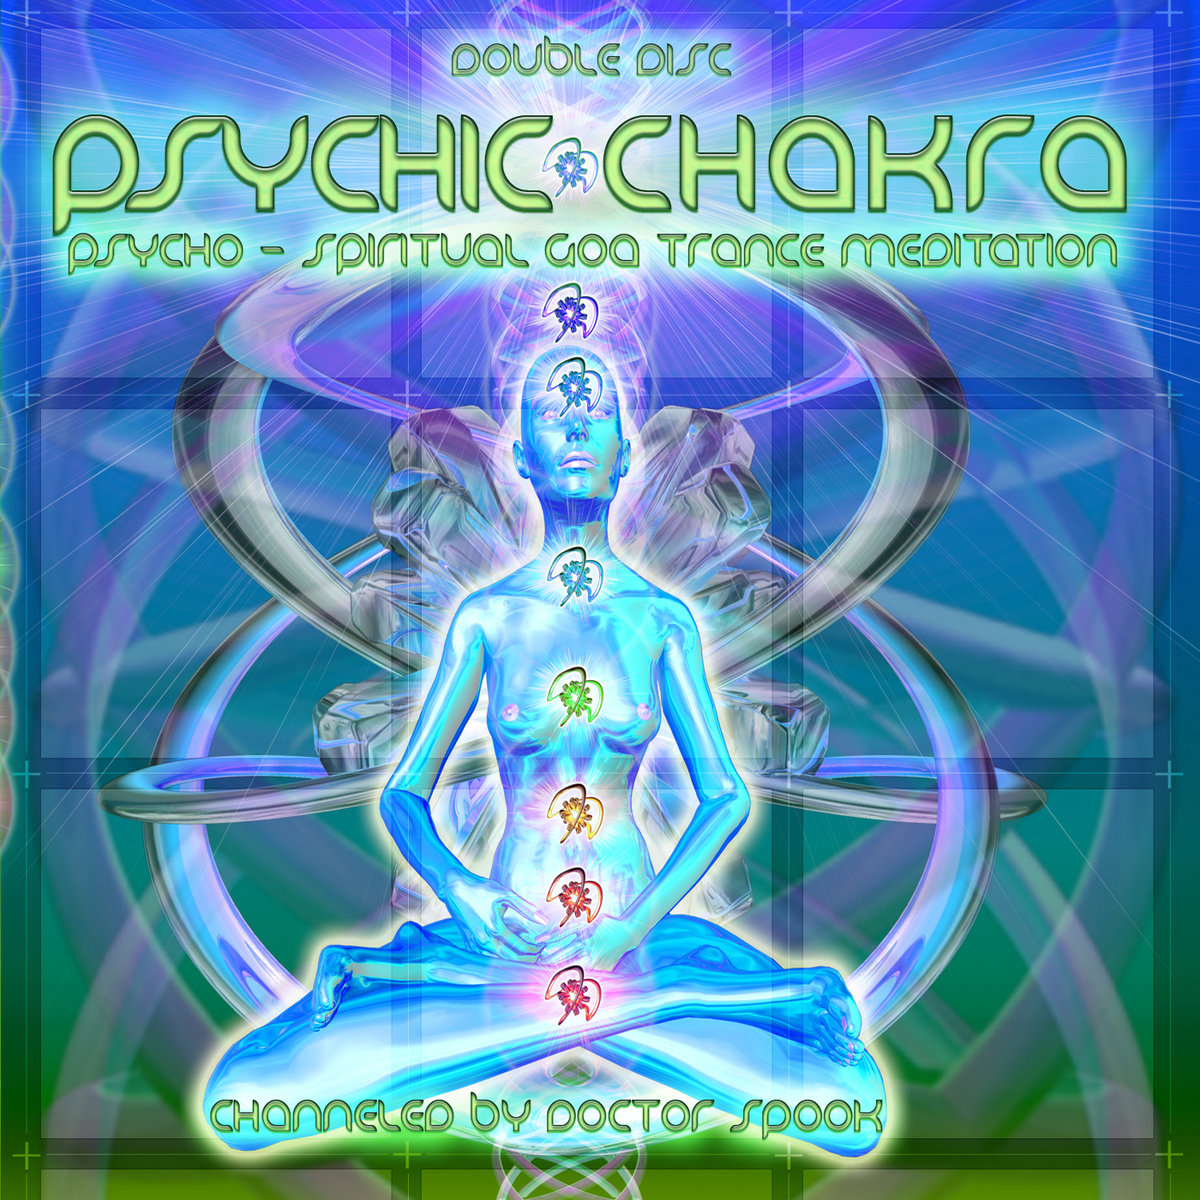 Wicked Wires (Delysid) - Neo Human @ 'Various Artists - Psychic Chakra (Channeled by Dr. Spook)' album (electronic, psychic chakra)